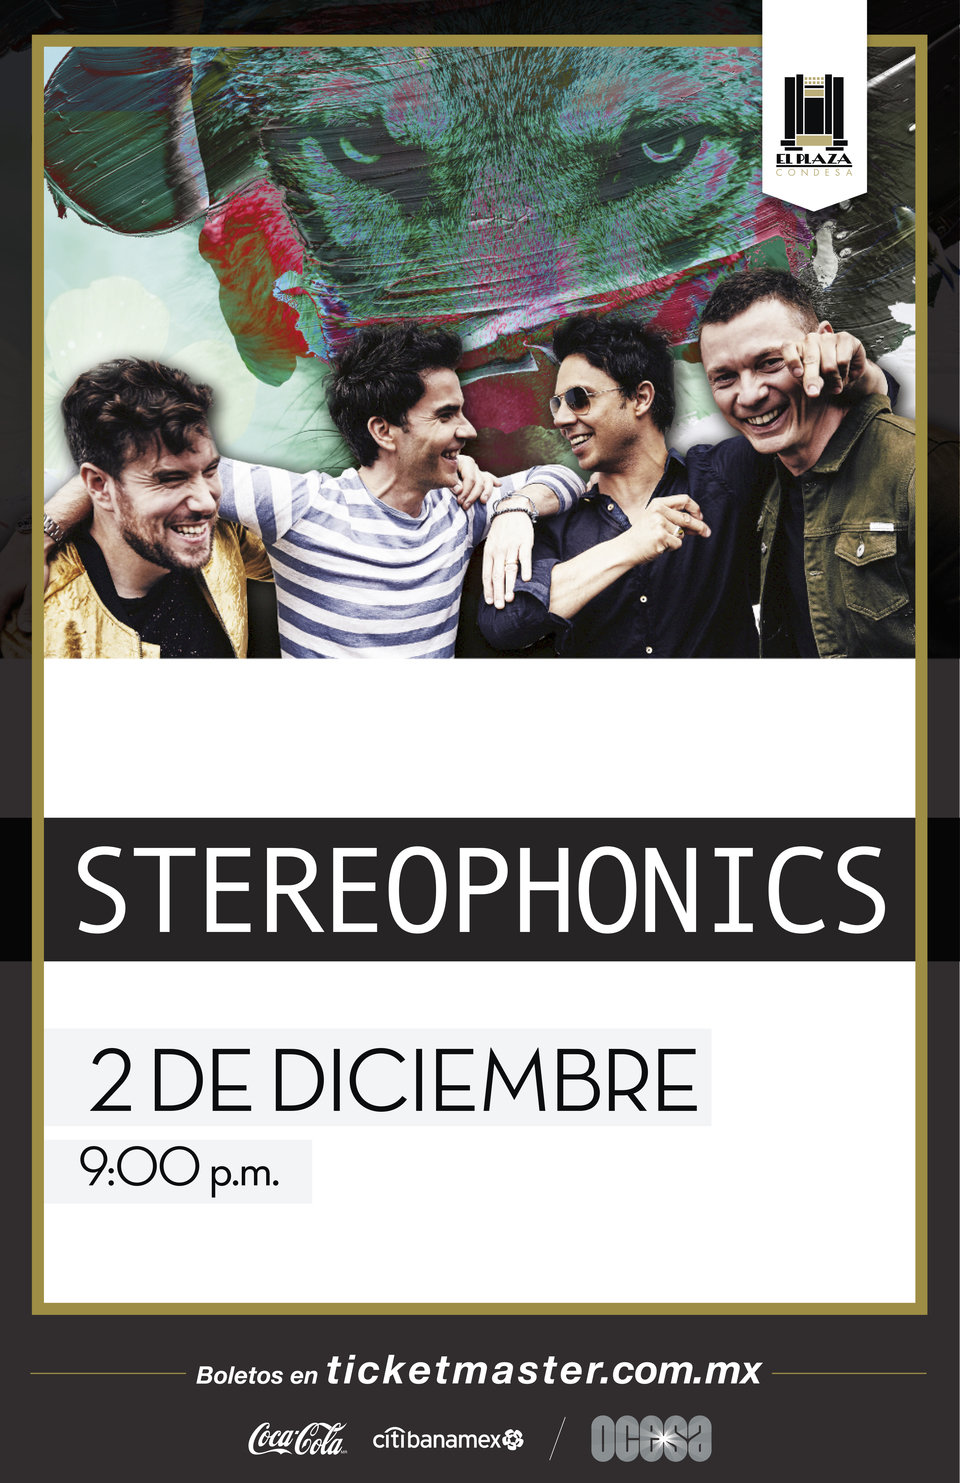 Stereophonics, arte oficial.